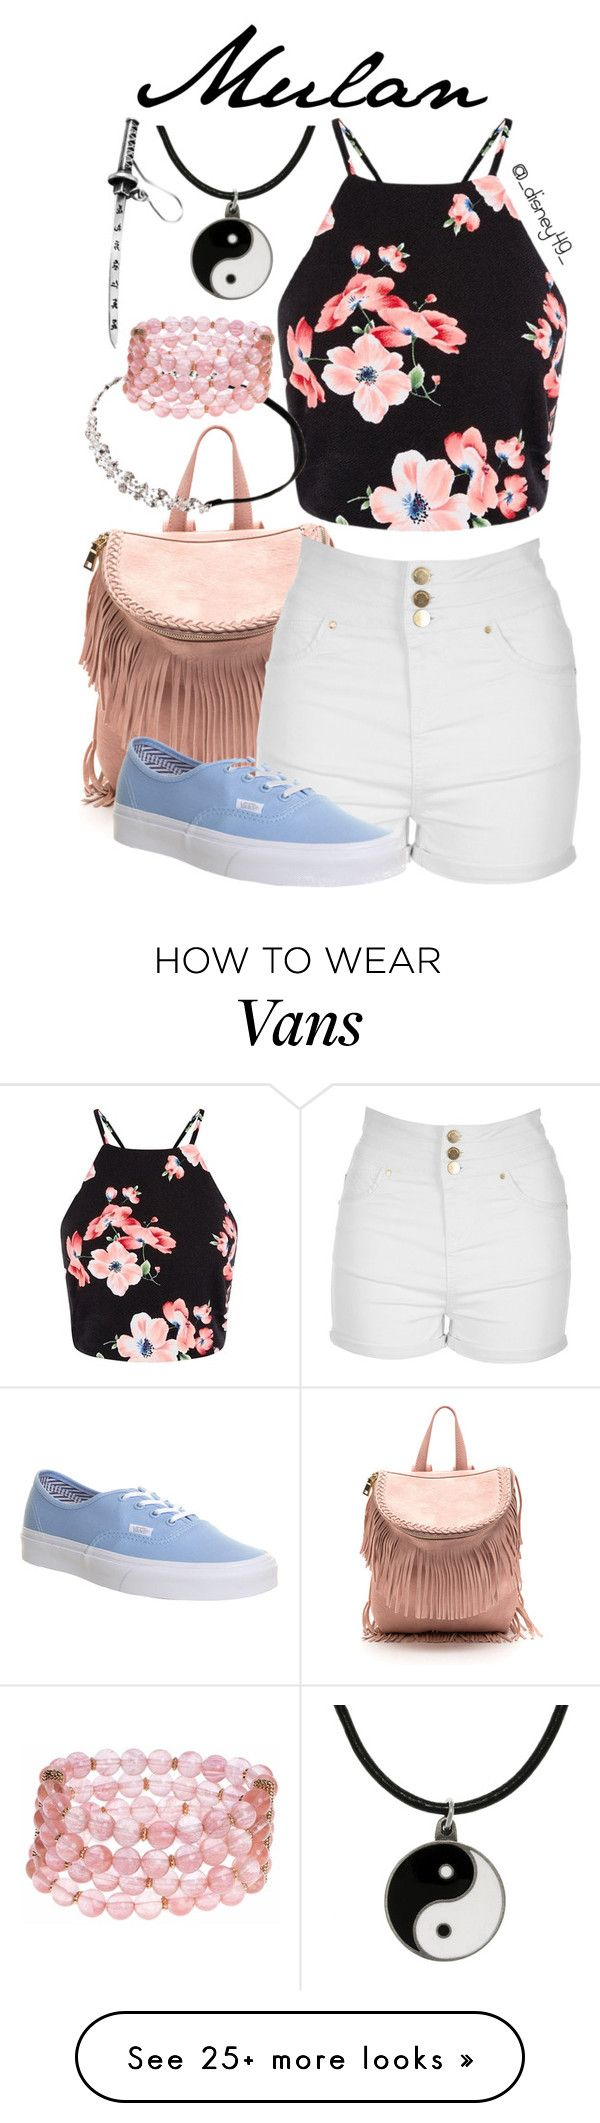 """""""Mulan"""" by disney49 on Polyvore featuring Jane Norman, Carolina Glamour Collection, Vans, Johnny Loves Rosie and Lonna & Lilly"""